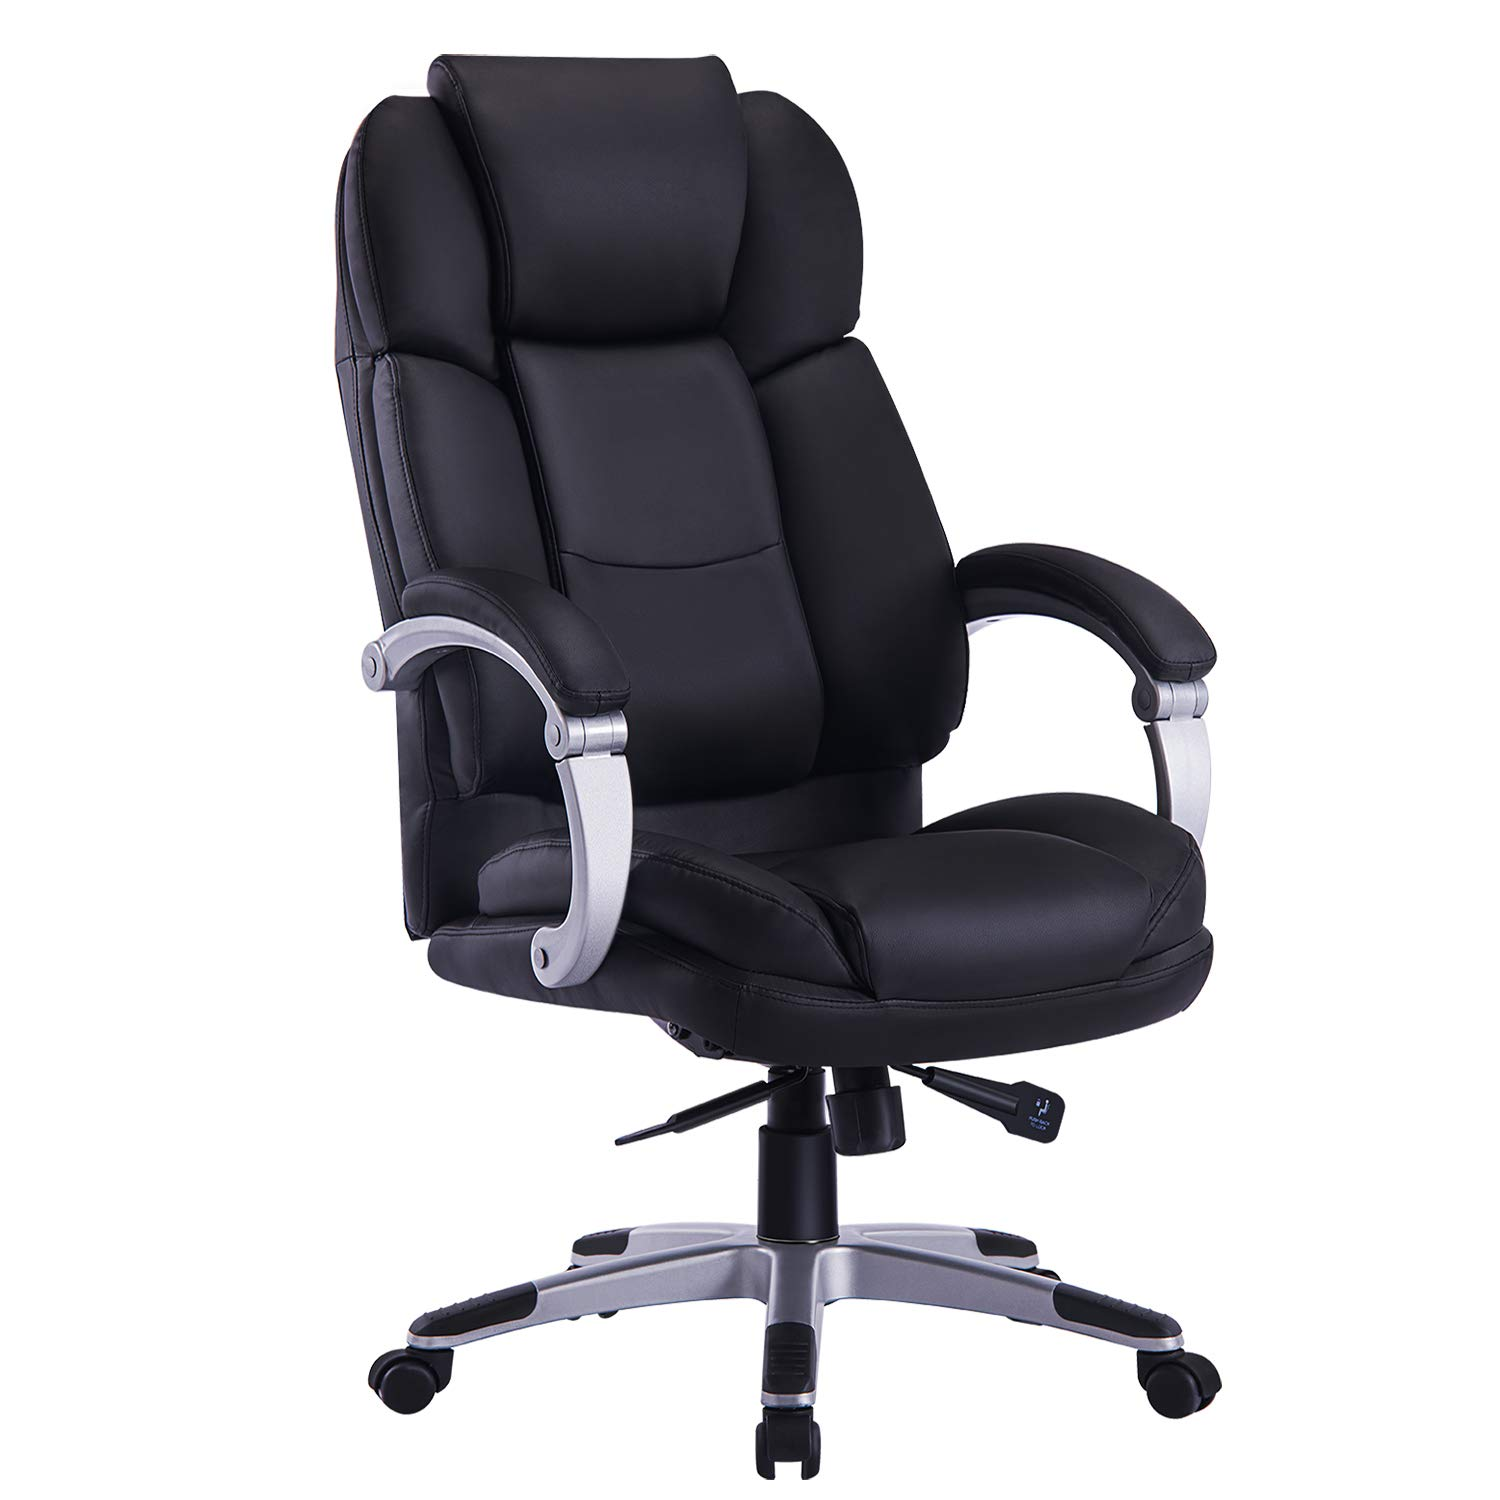 High Back Leather Executive Office Chair - Adjustable Recline Locking Mechanism, Linkage Arms Computer Desk Chair, Thick Padding and Ergonomic Design for Lumbar Support (Black) ASNL001 (Black)